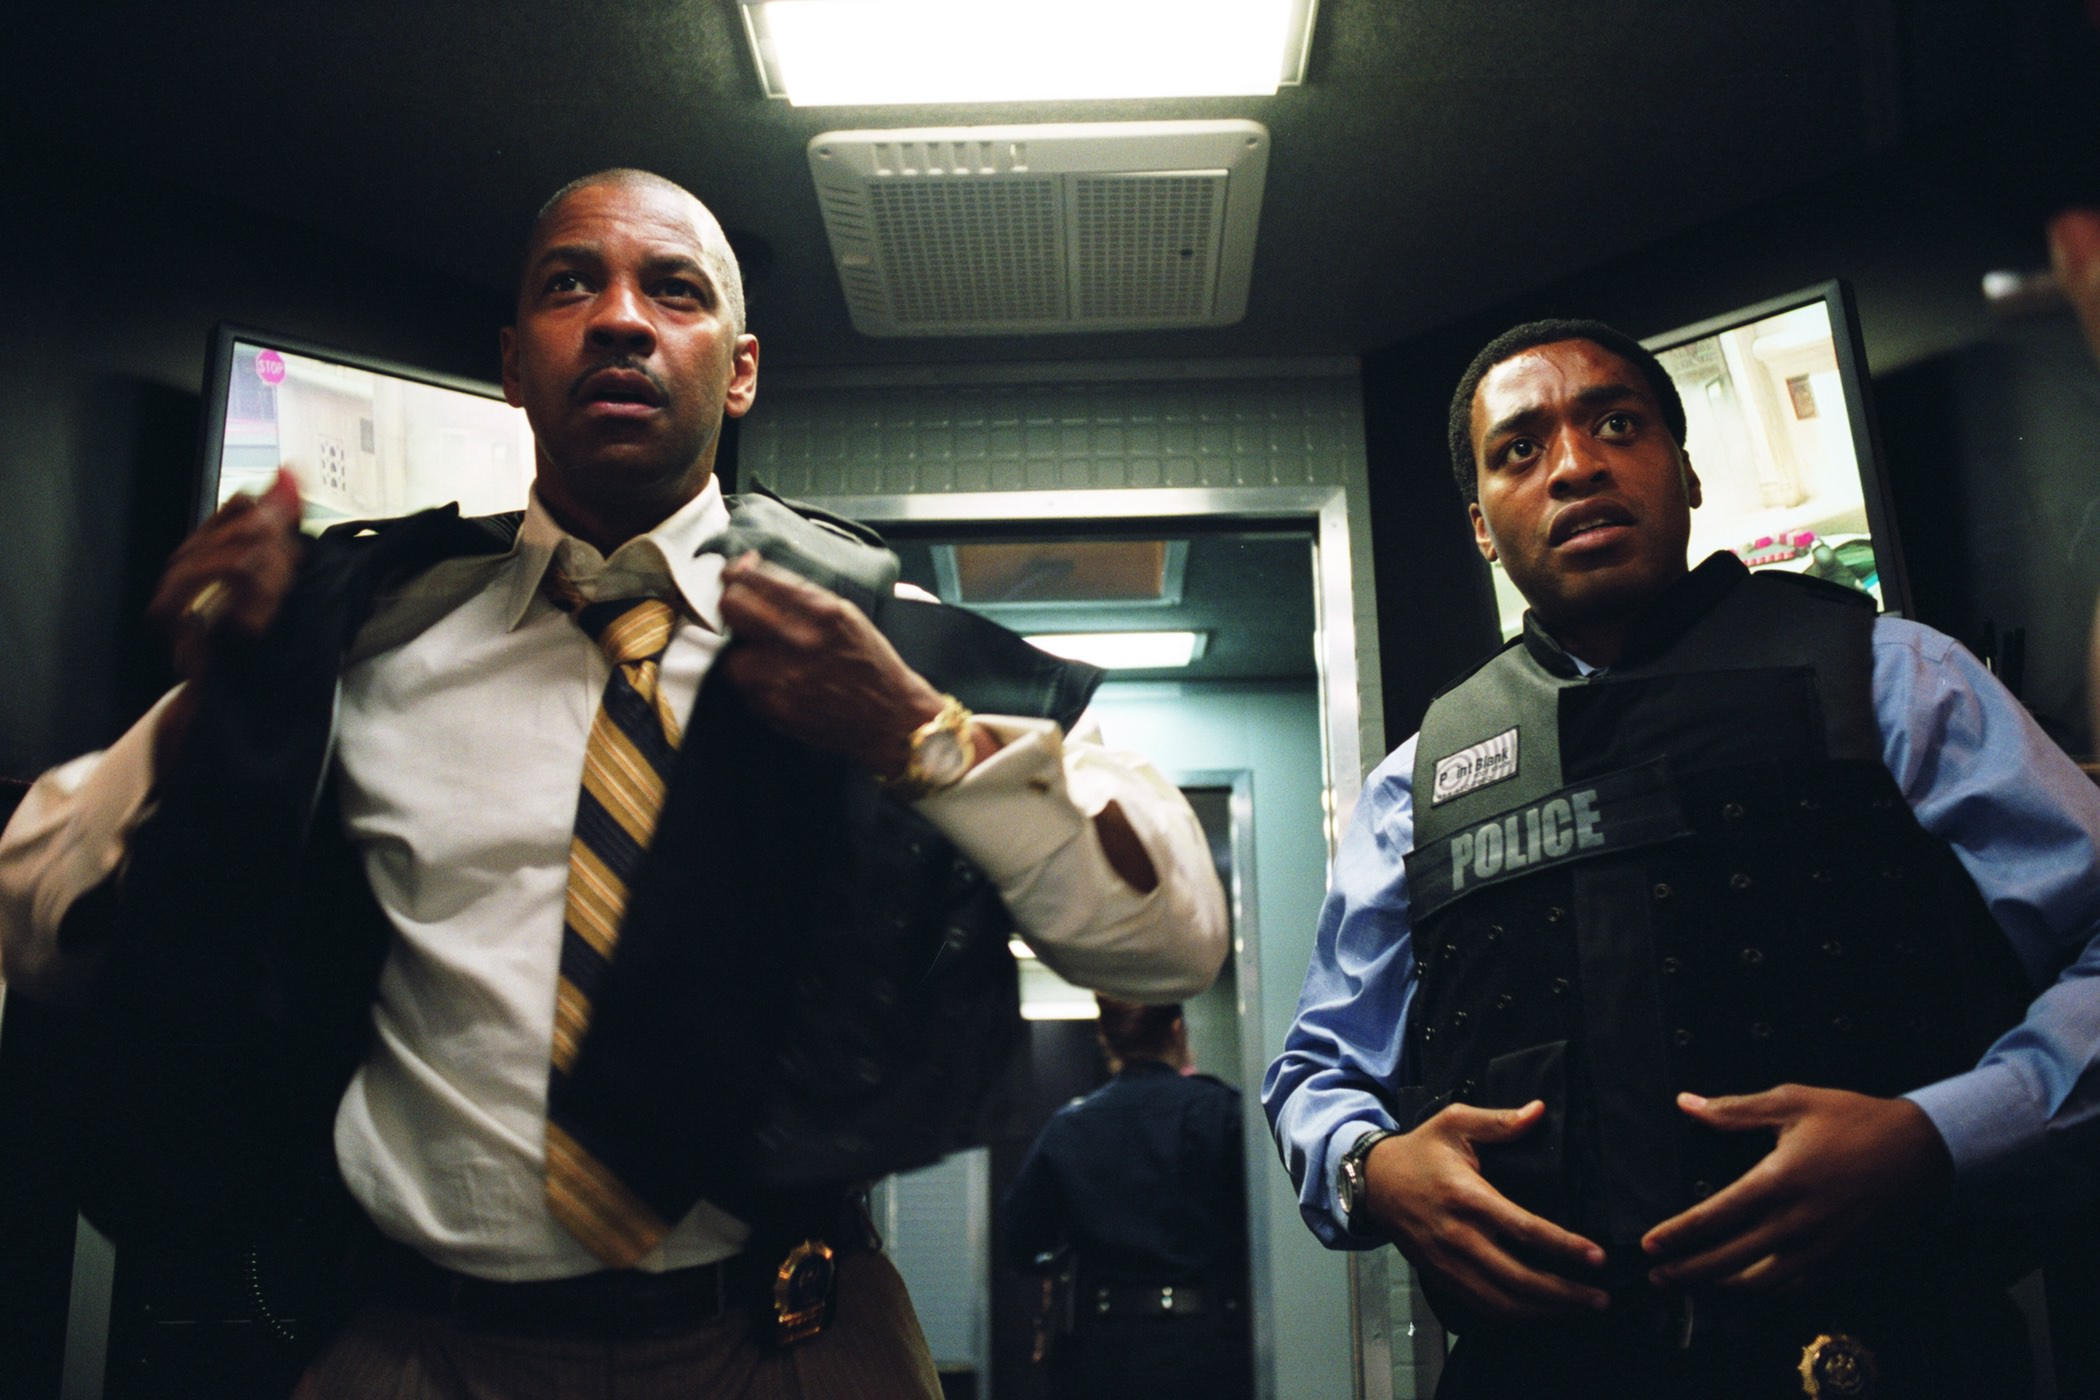 Inside man homme interieur denzel washington chiwetel eijofor